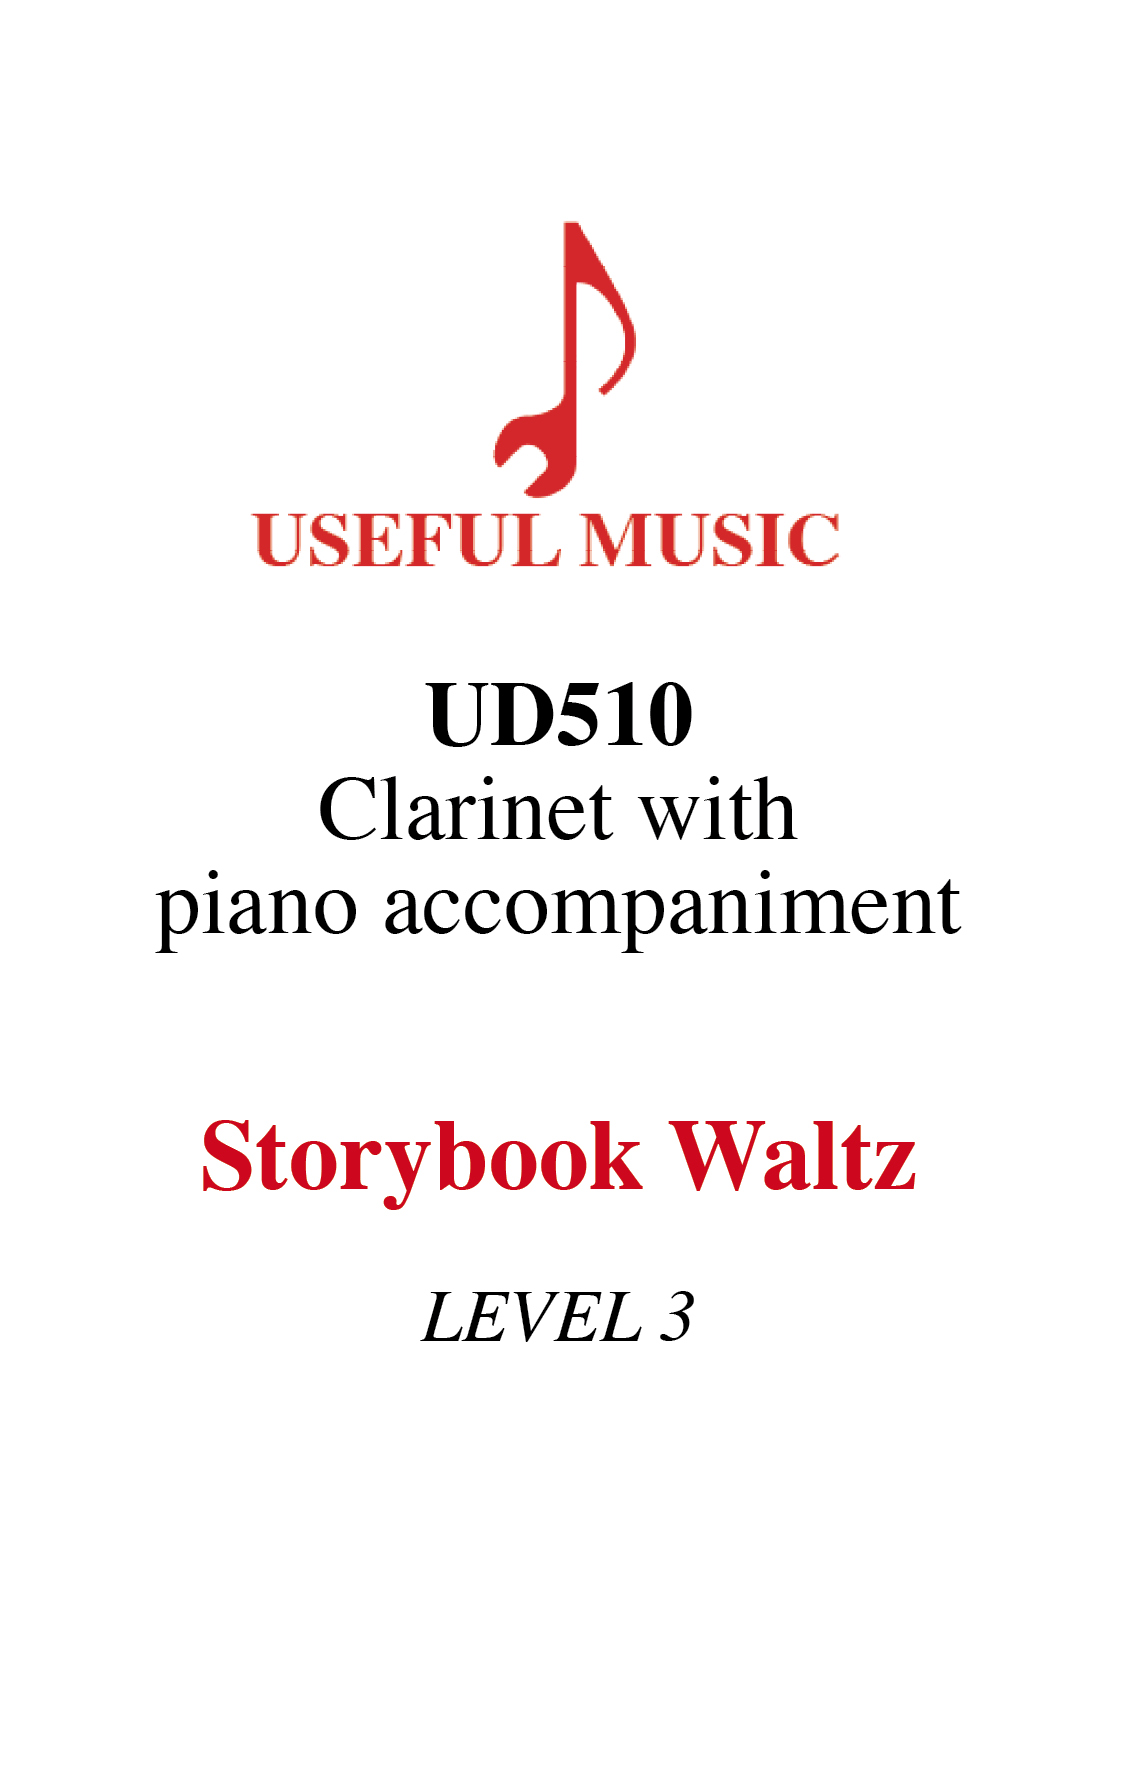 Storybook Waltz - Clarinet with piano accompaniment